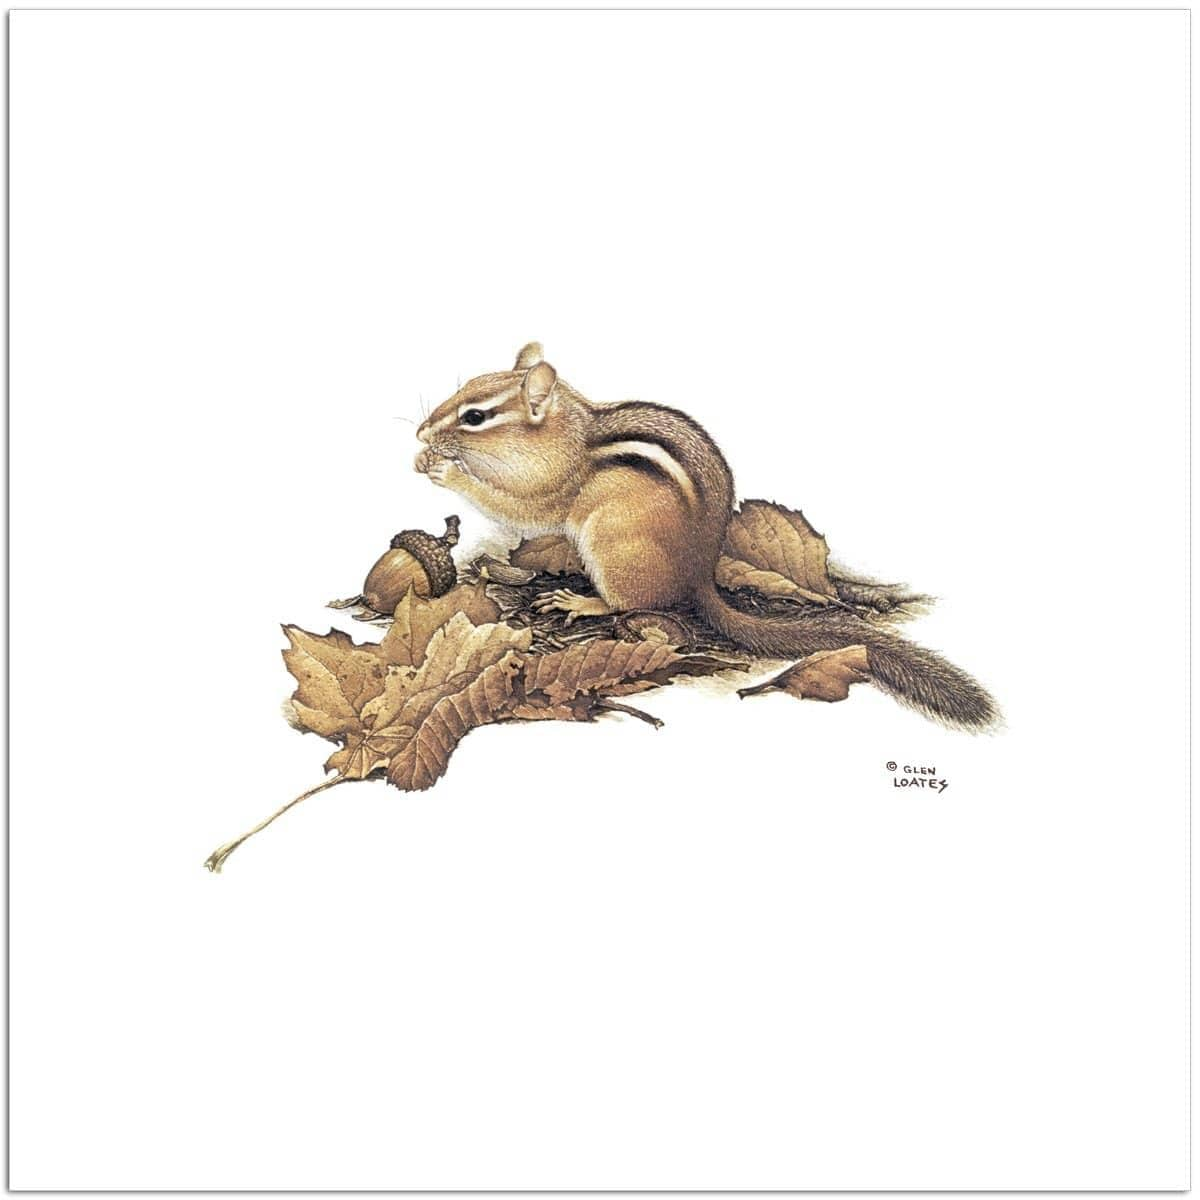 Chipmunk and Acorns - Art Print - The Official Glen Loates Store